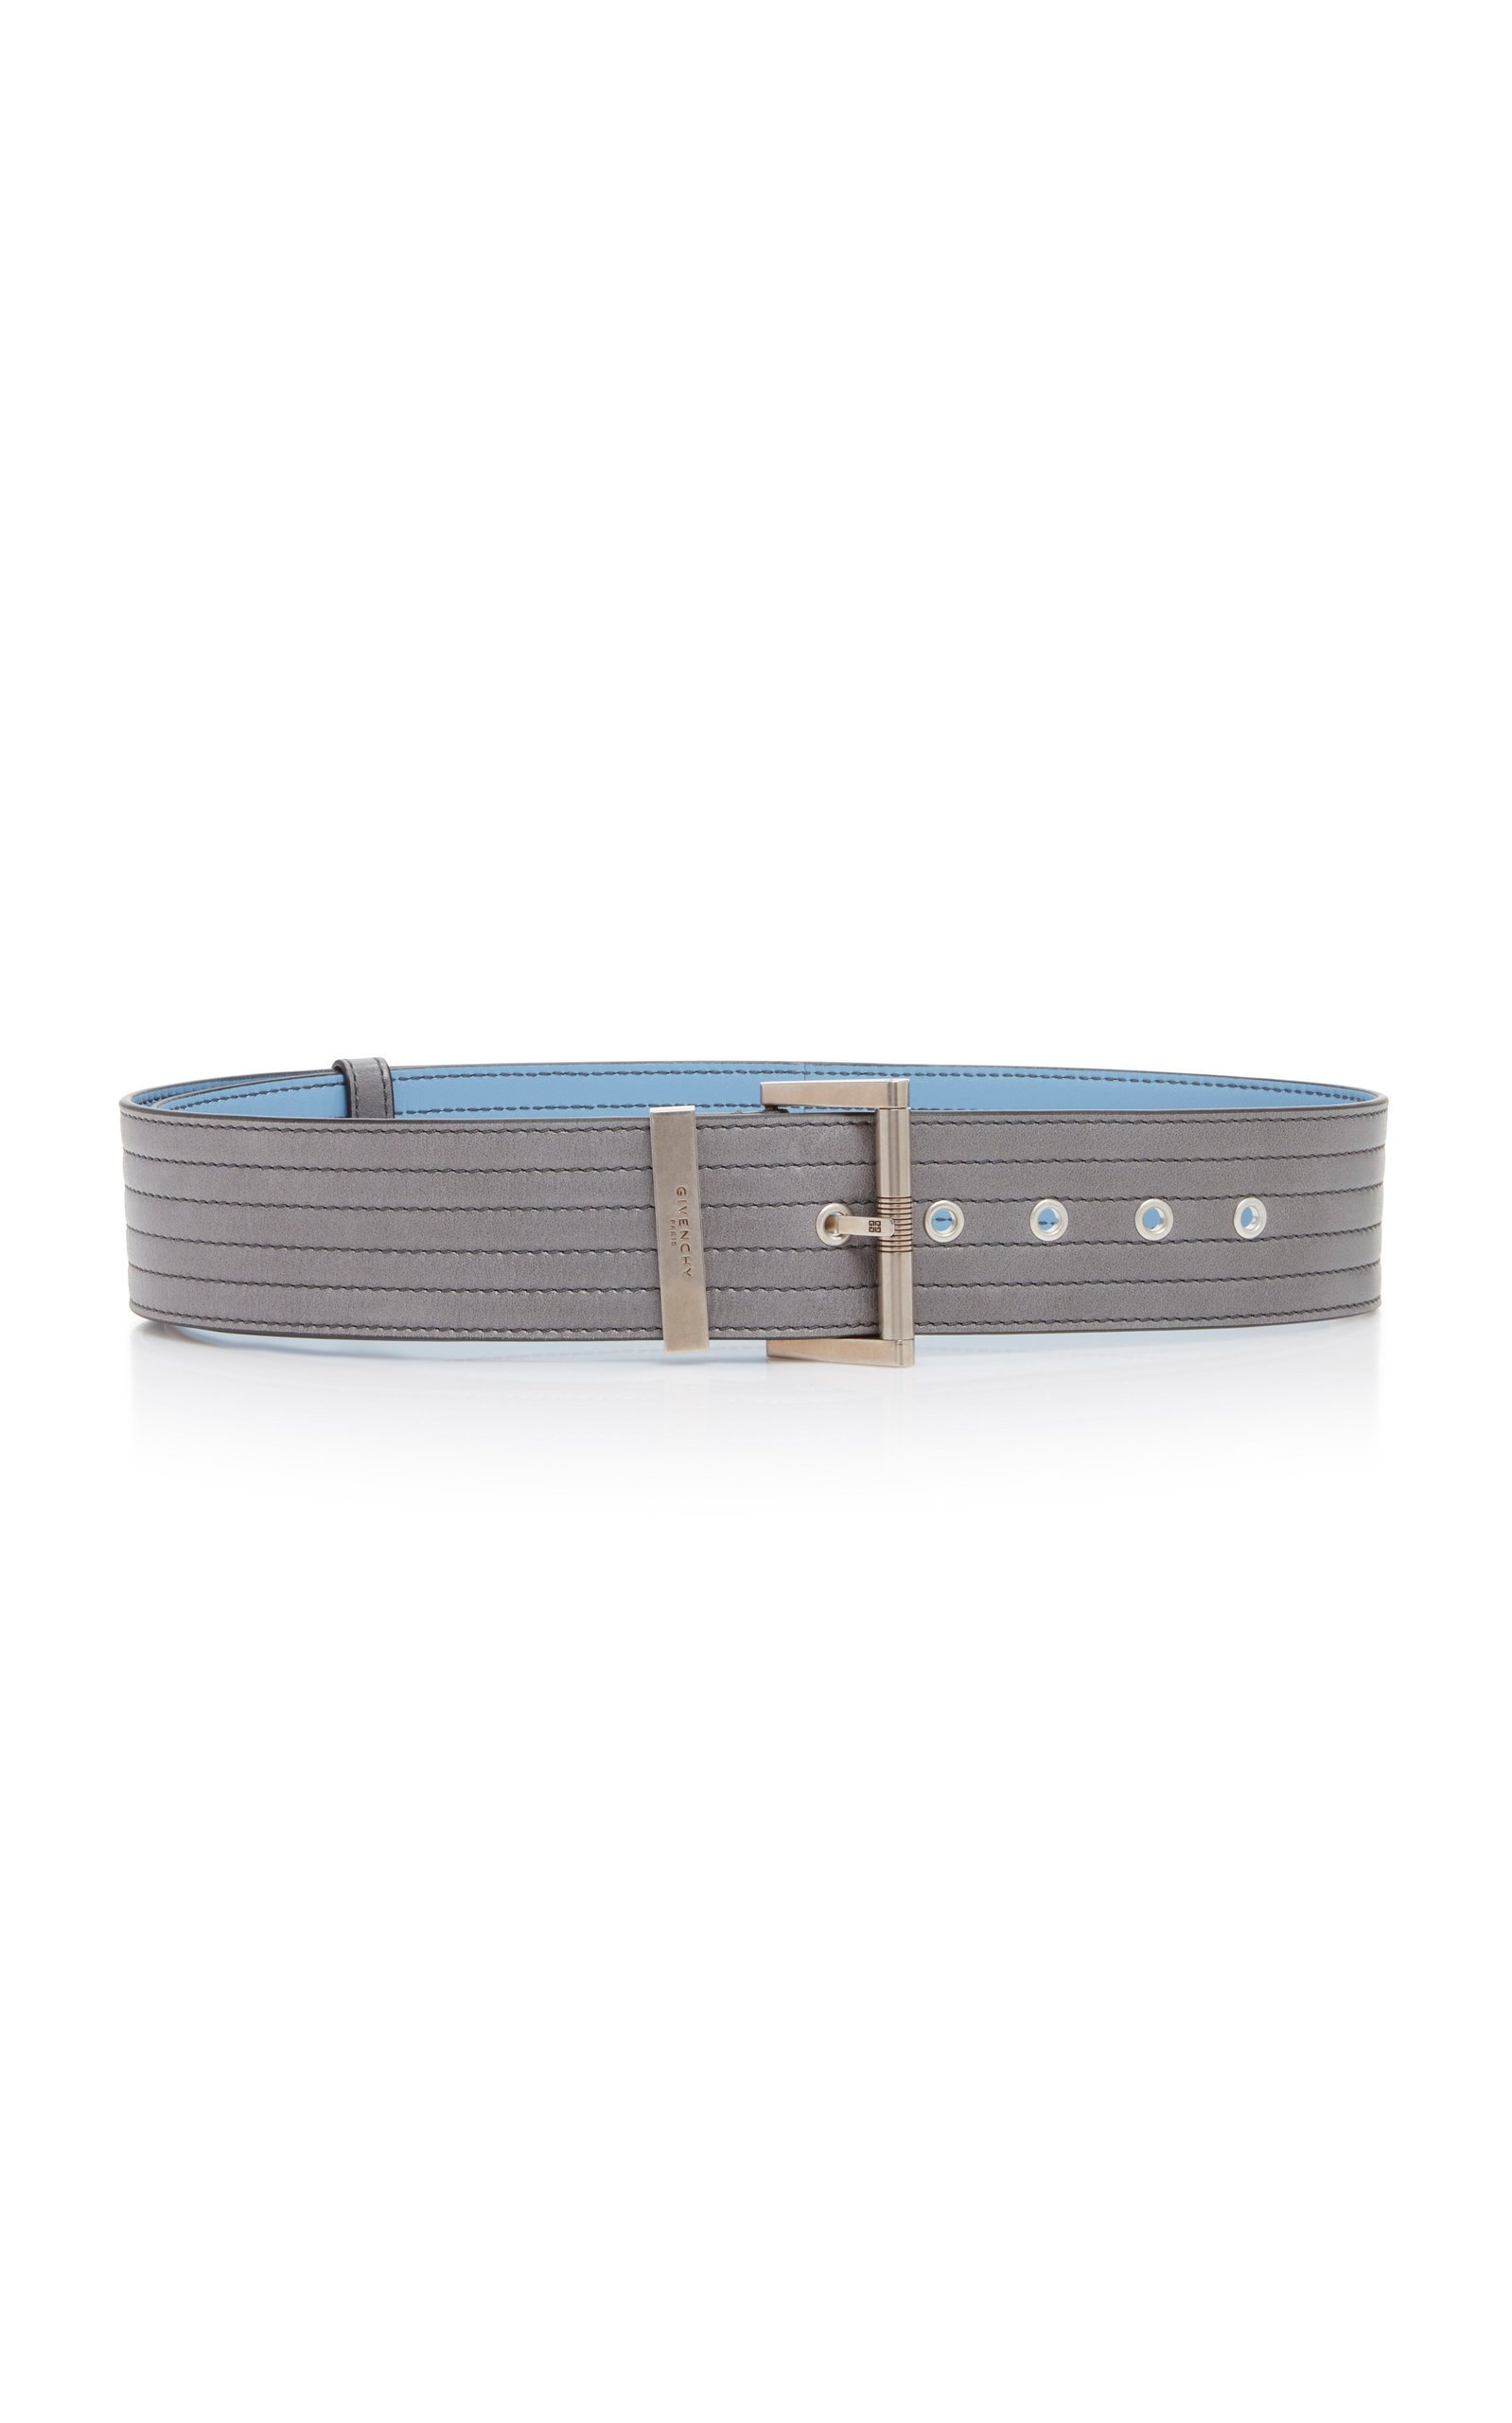 Givenchy Silver-Tone Textured-Leather Belt